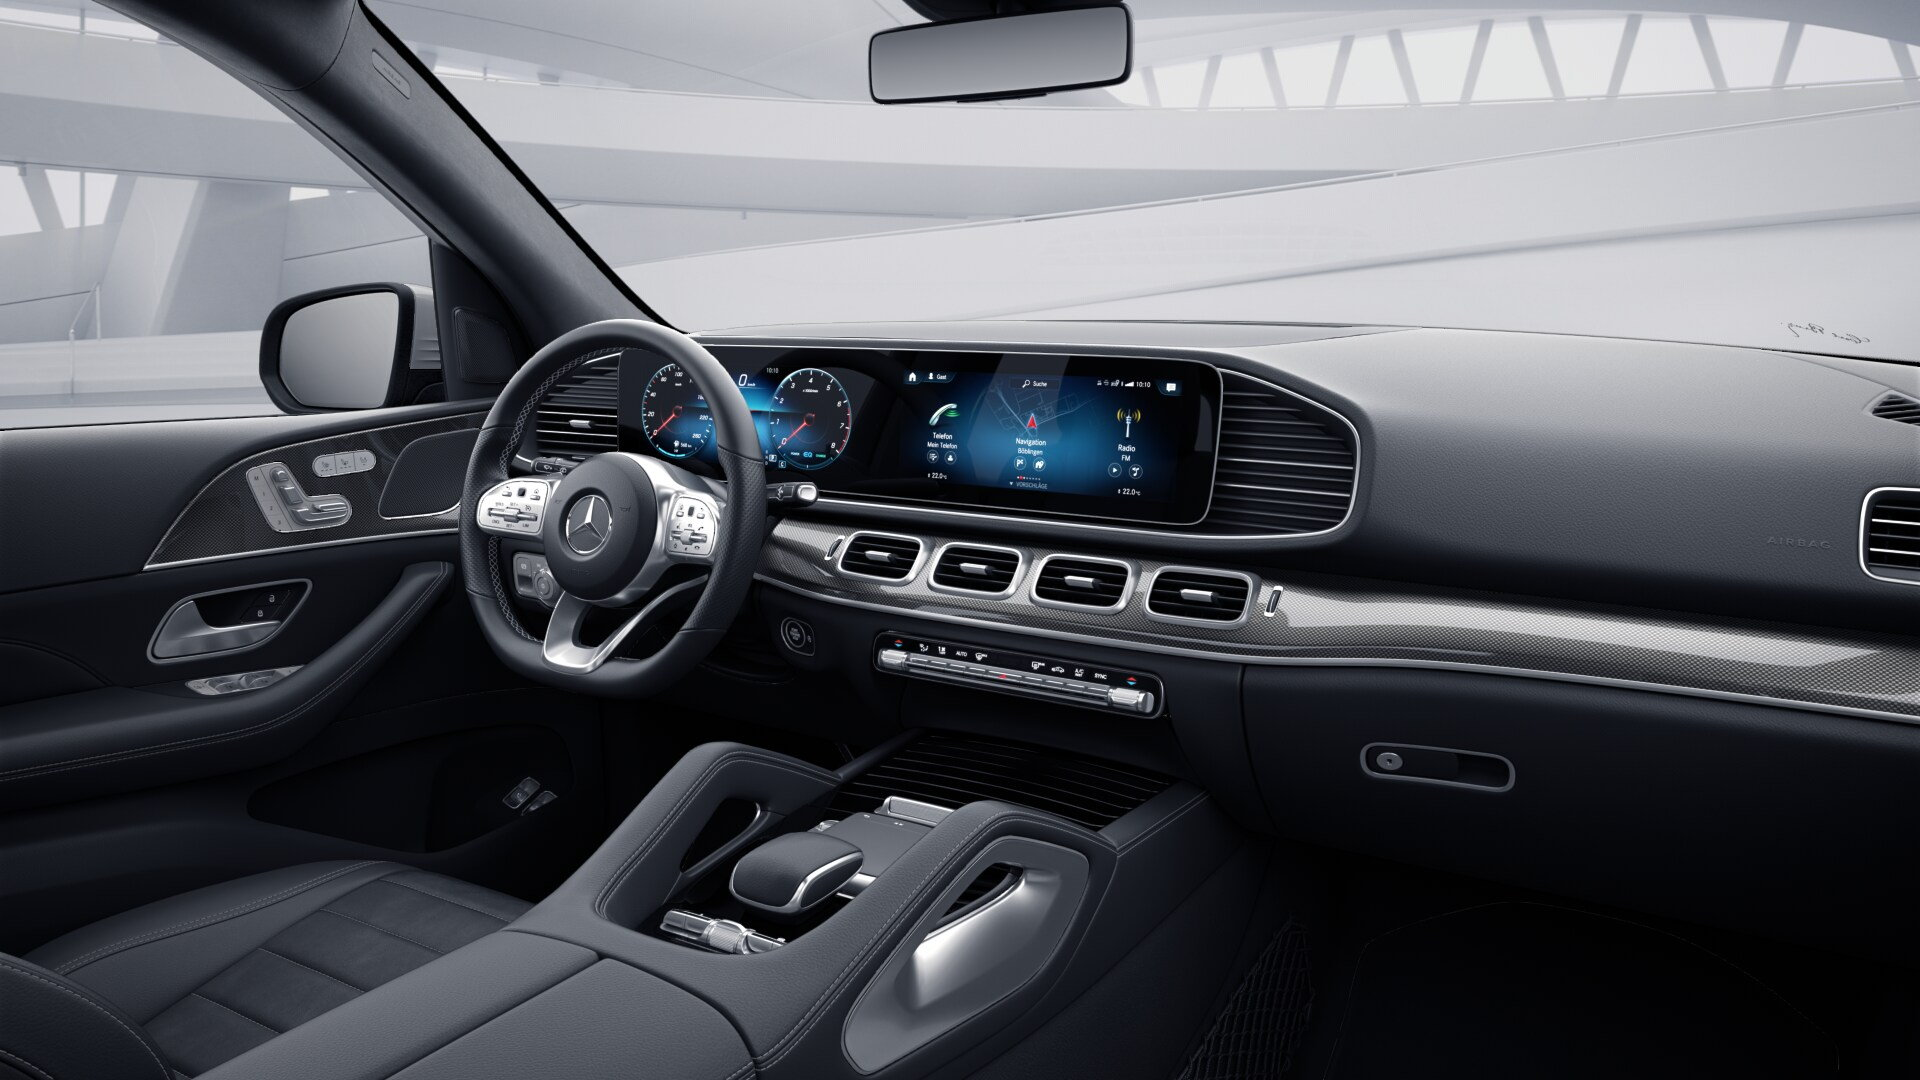 2020 Mercedes GLE Interior - configurations and pictures ...